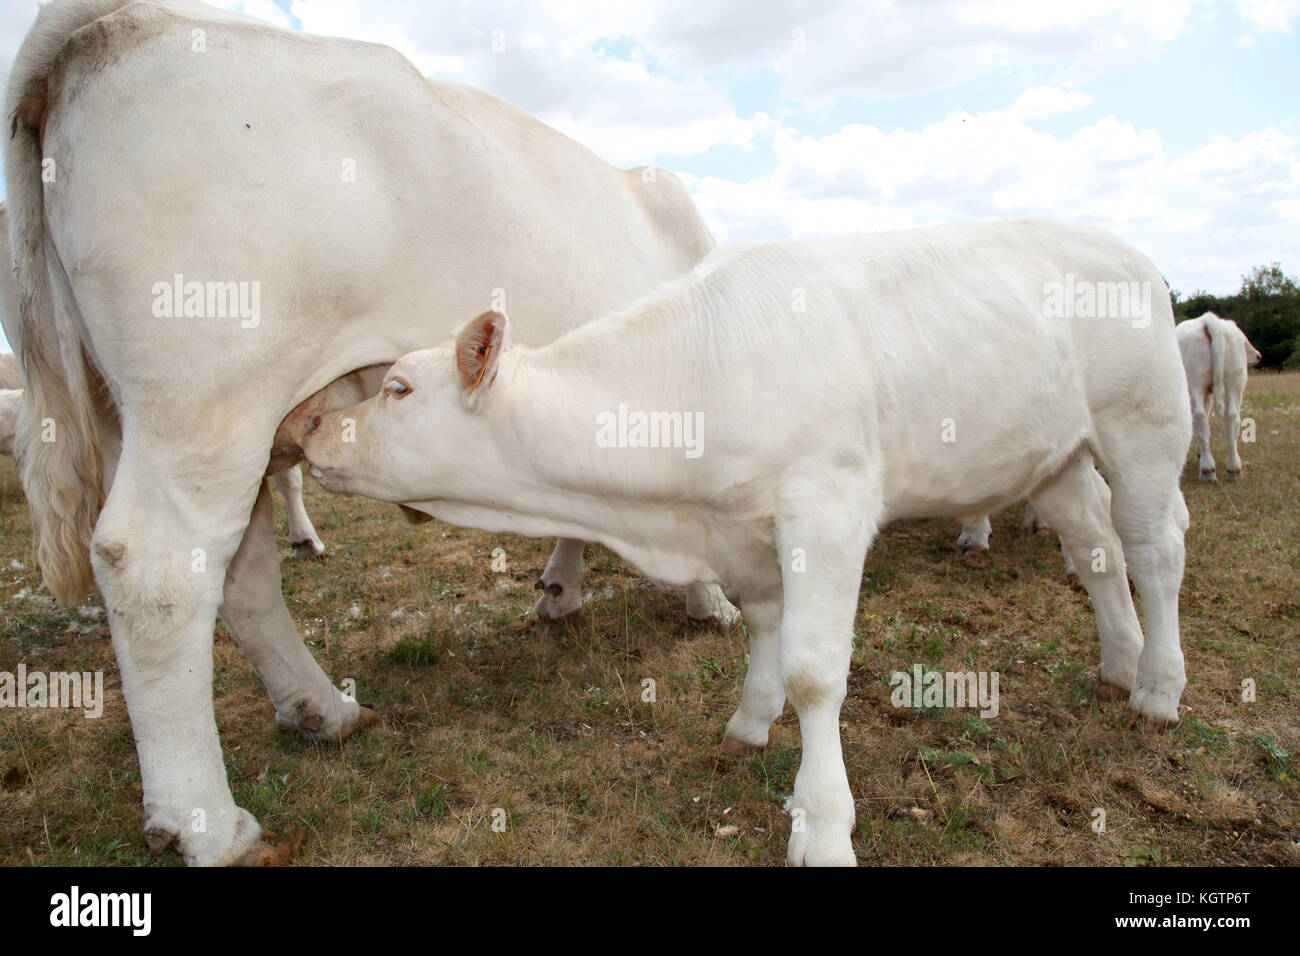 Cow Udder Stock Photos & Cow Udder Stock Images - Alamy